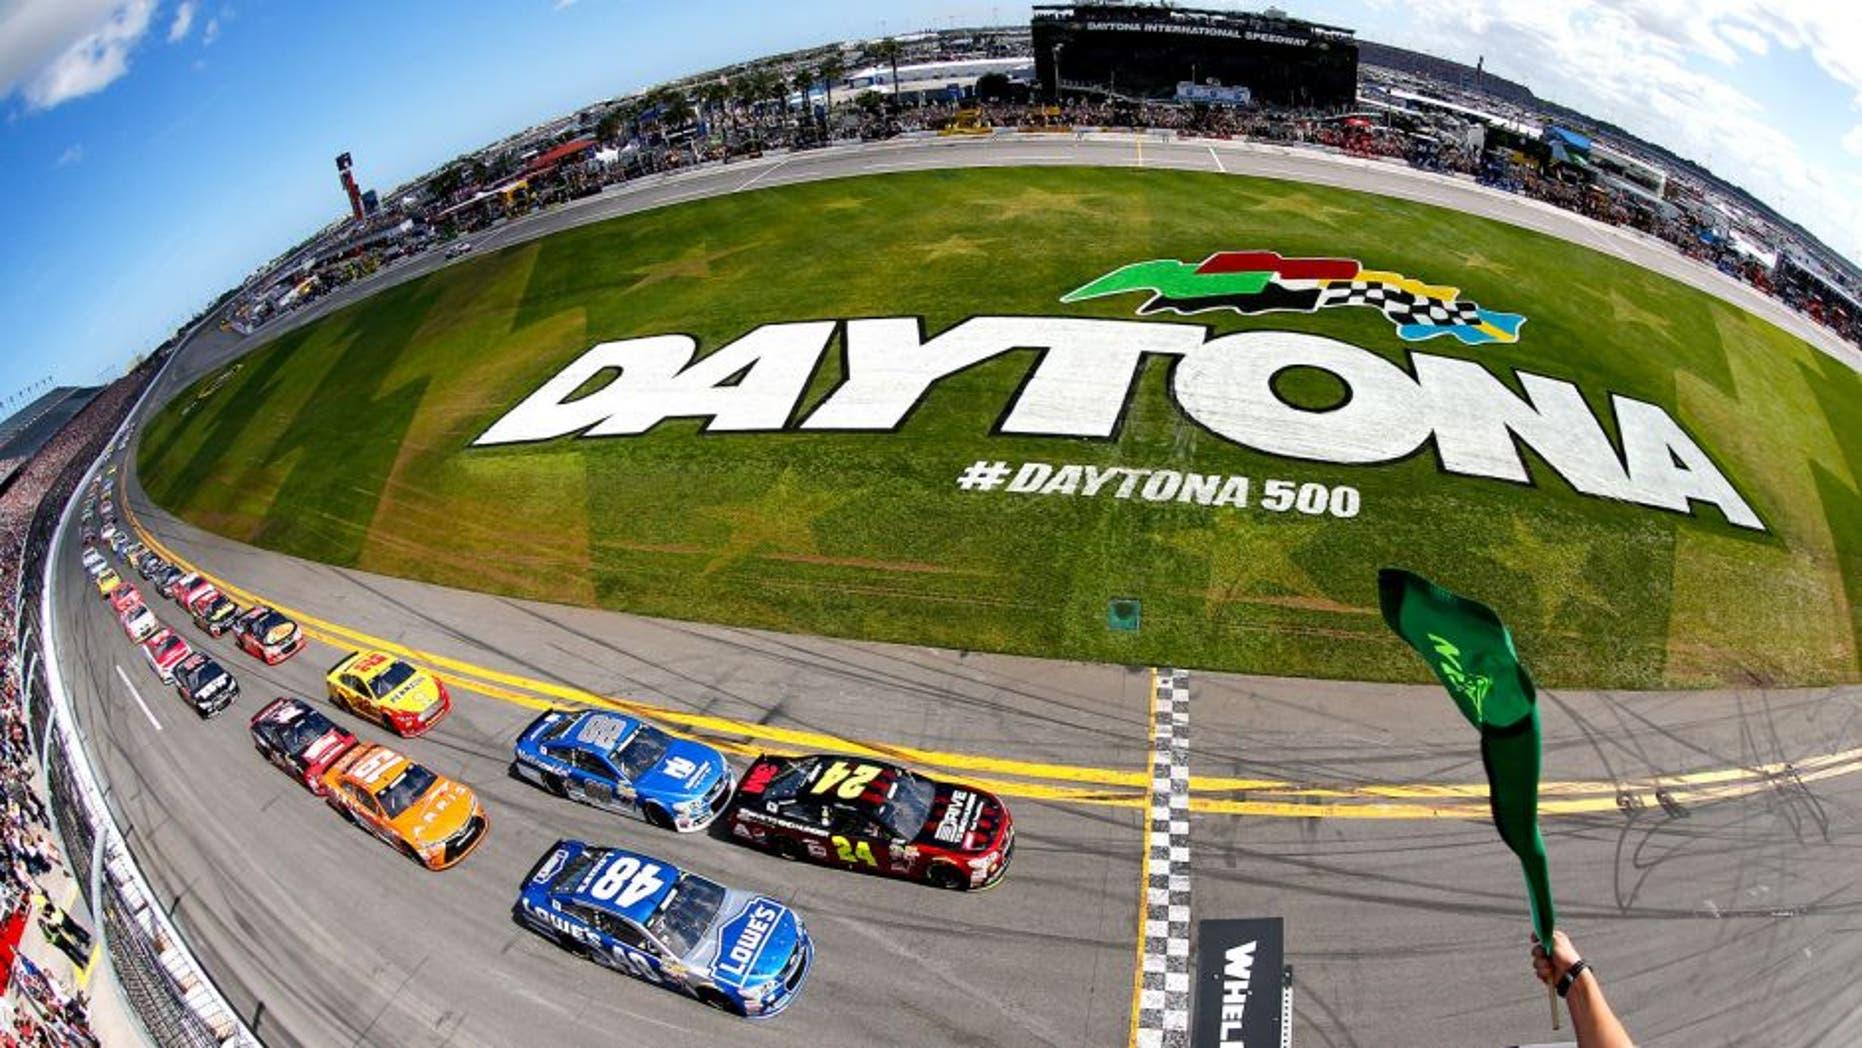 DAYTONA BEACH, FL - FEBRUARY 22: Jeff Gordon, driver of the #24 Drive To End Hunger Chevrolet, and Jimmie Johnson, driver of the #48 Lowe's Chevrolet, lead the field to the green flag for the running of the NASCAR Sprint Cup Series 57th Annual Daytona 500 at Daytona International Speedway on February 22, 2015 in Daytona Beach, Florida. (Photo by Jonathan Ferrey/NASCAR via Getty Images)